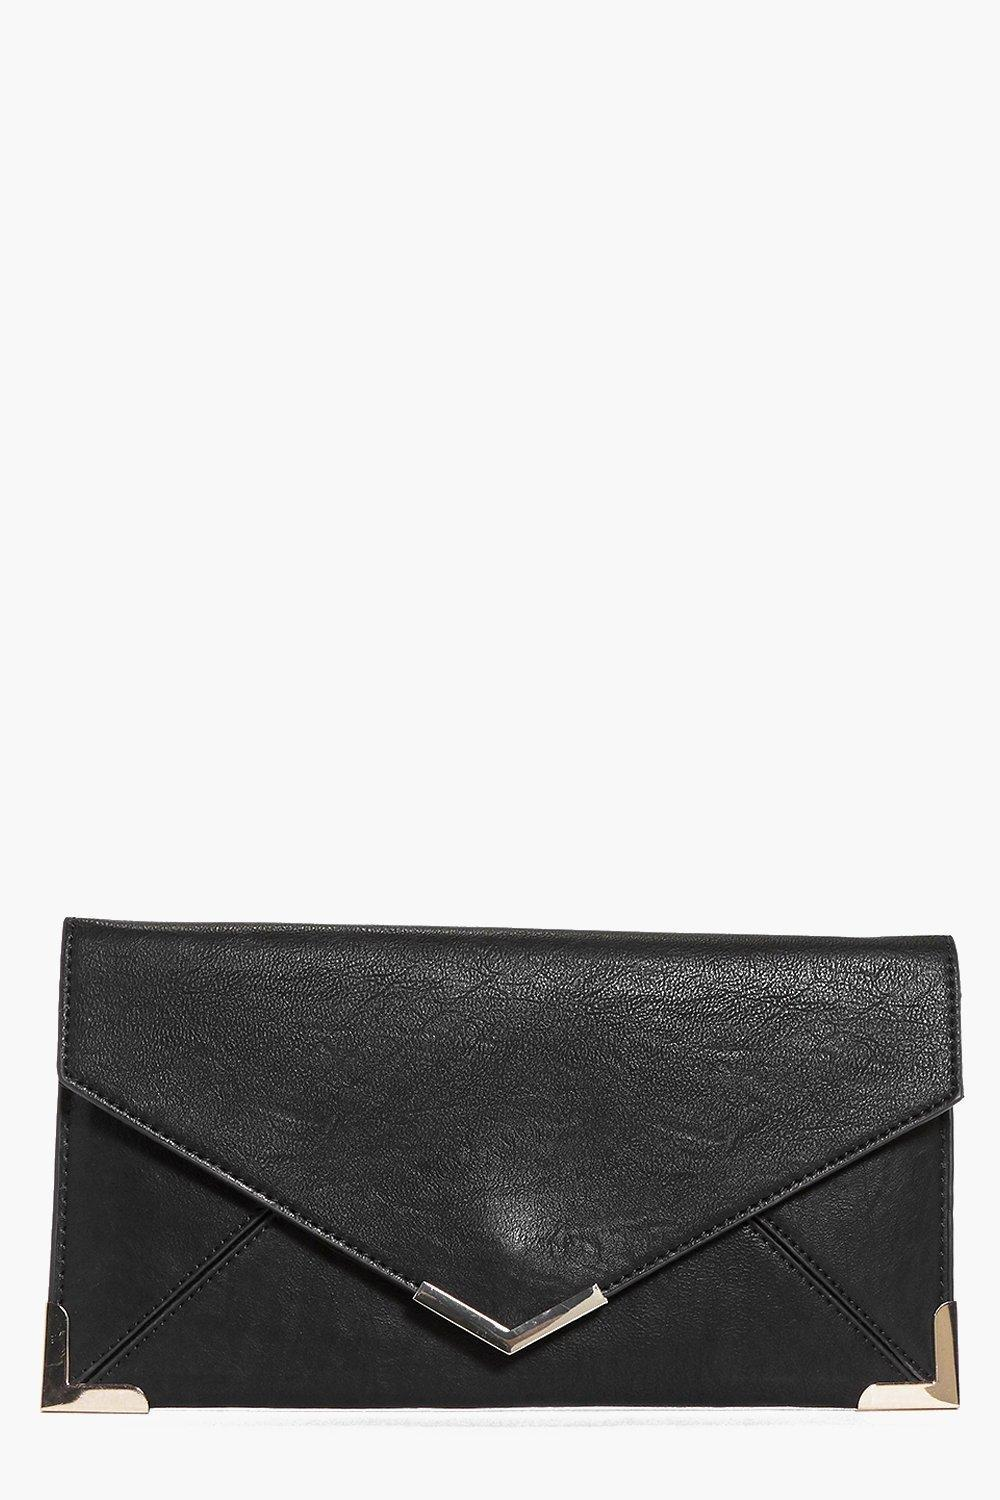 Metal Trim Envelope Clutch Black - predominant colour: black; occasions: evening, occasion; type of pattern: standard; style: clutch; length: hand carry; size: oversized; material: faux leather; pattern: plain; finish: plain; season: a/w 2016